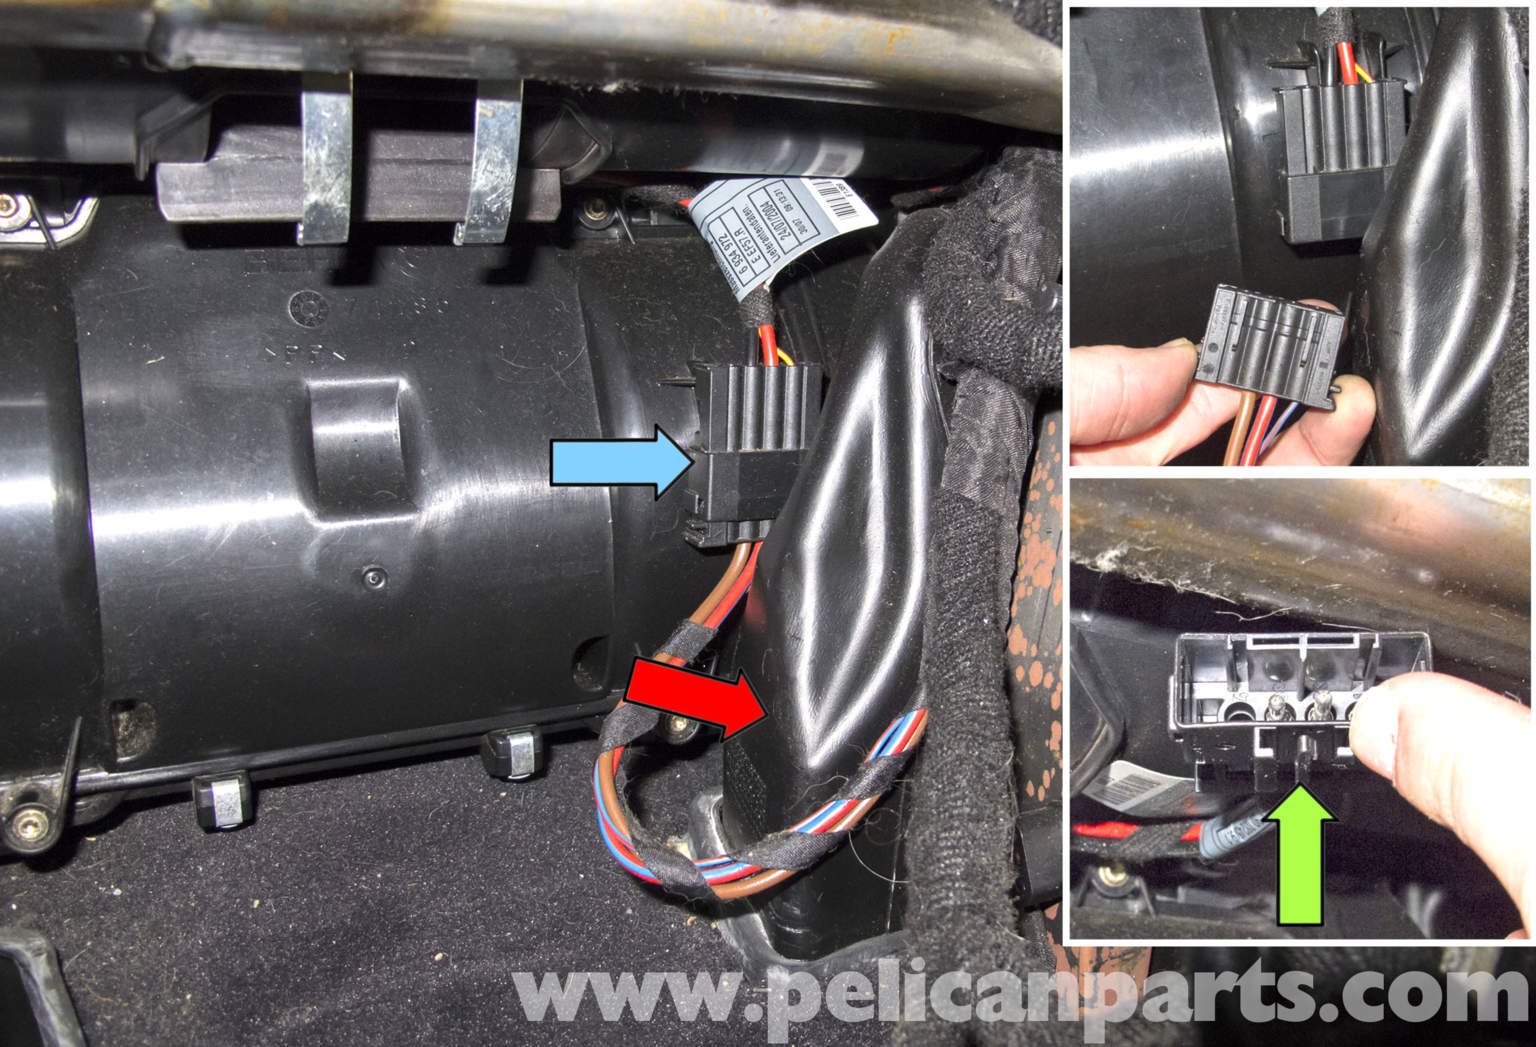 #905F3B BMW E60 5 Series HVAC Stepper Motor Replacement (2003 2010  Best 4403 Hvac Duct Pullers photos with 1536x1047 px on helpvideos.info - Air Conditioners, Air Coolers and more